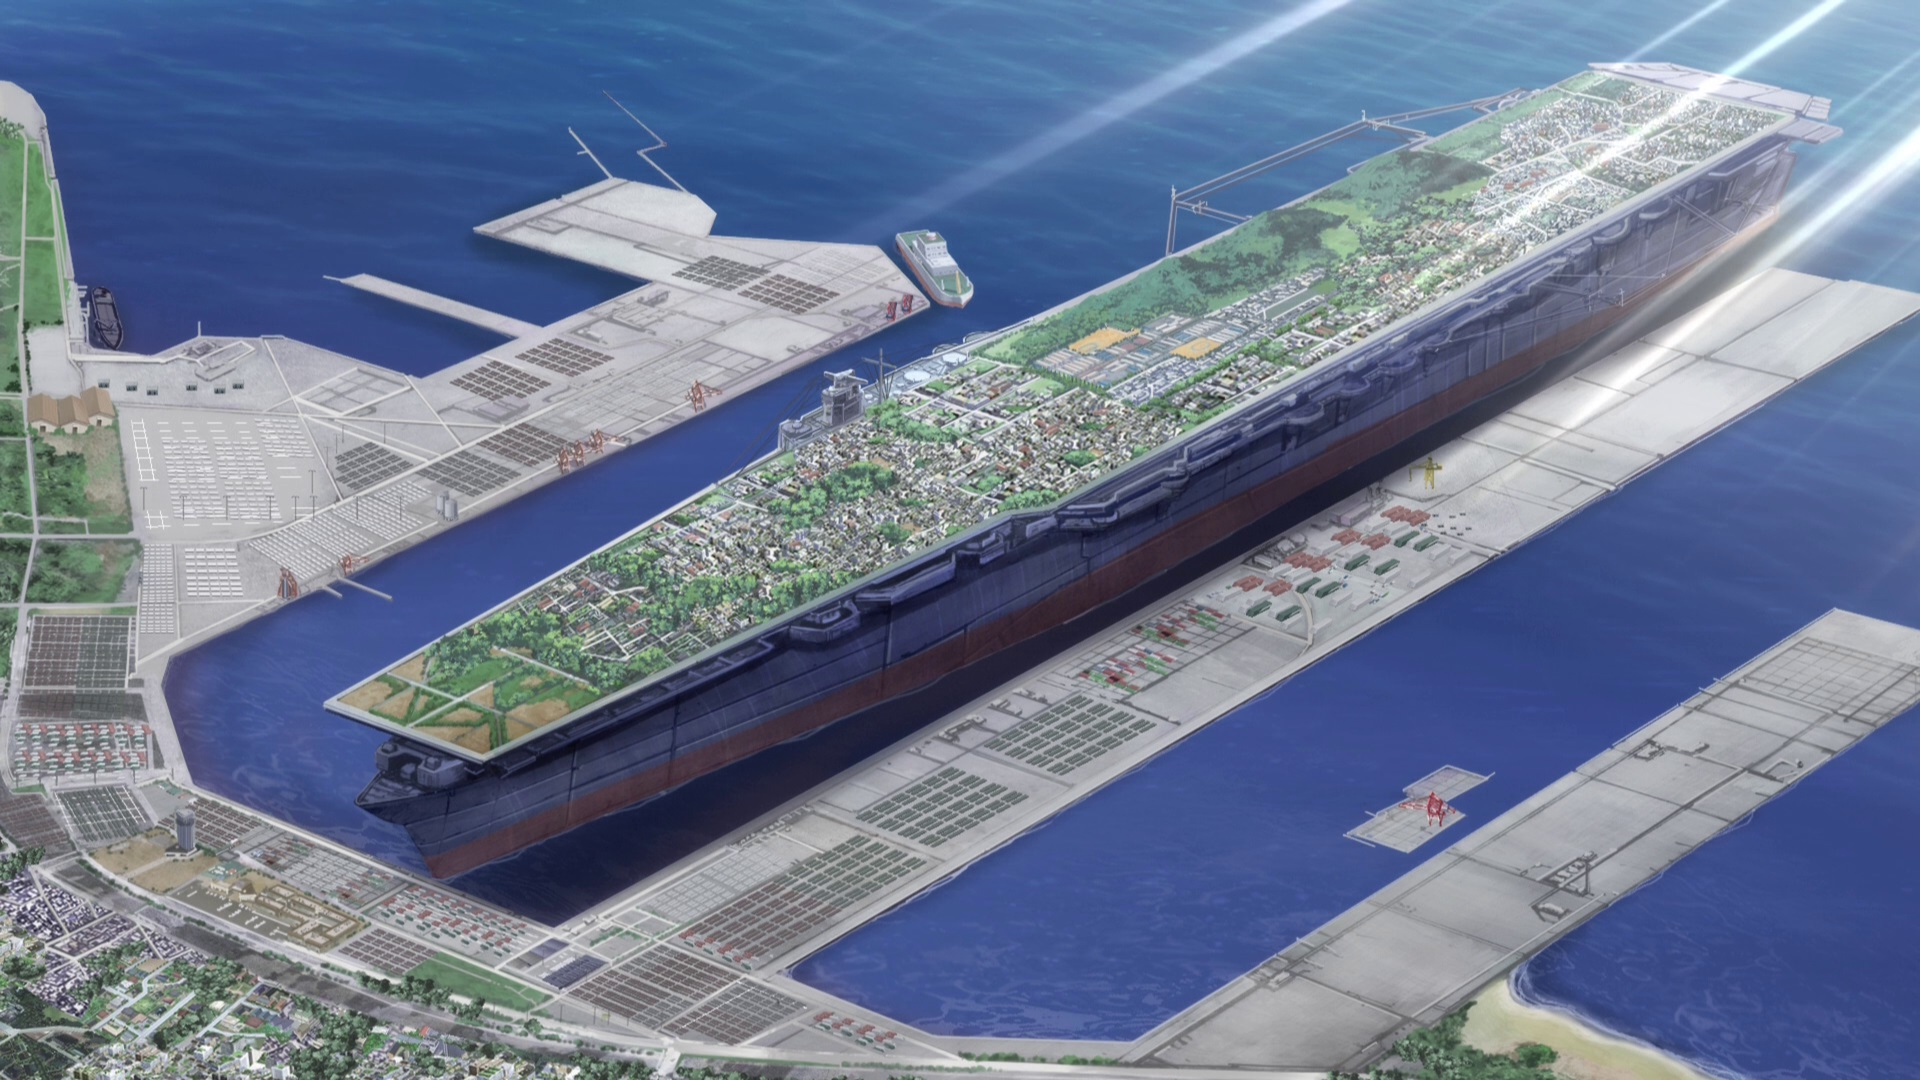 Quantifying the size of the aircraft carriers in Girls und Panzer